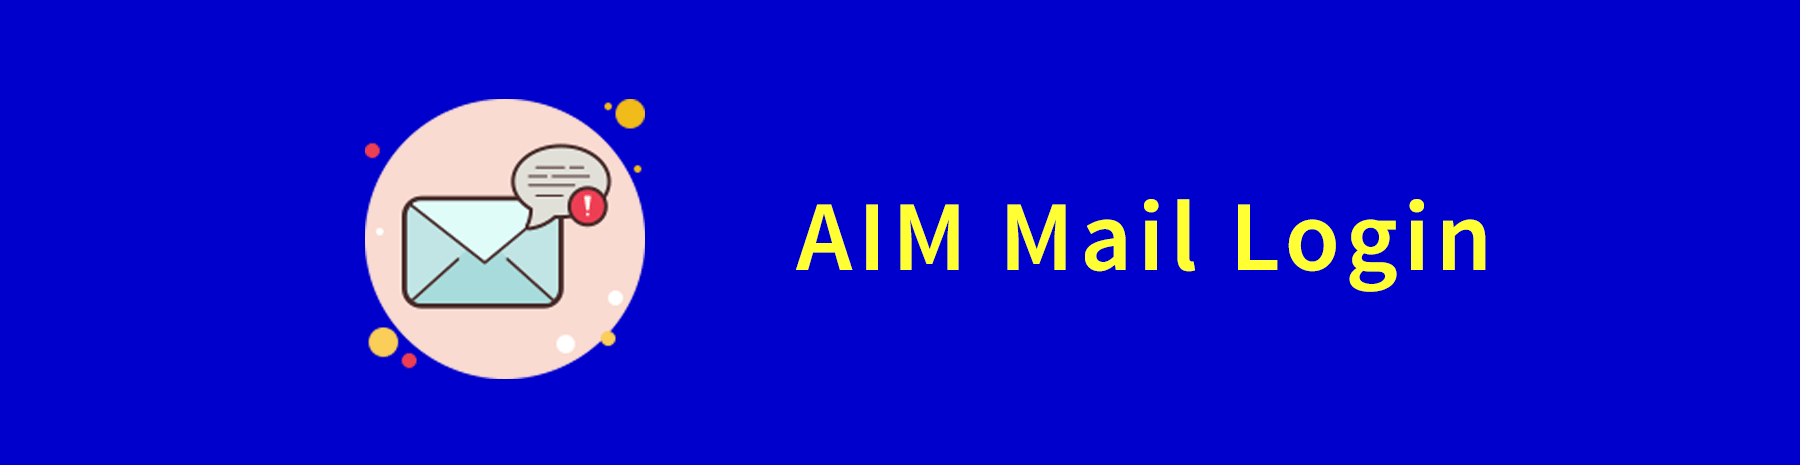 AIM-Mail-Login